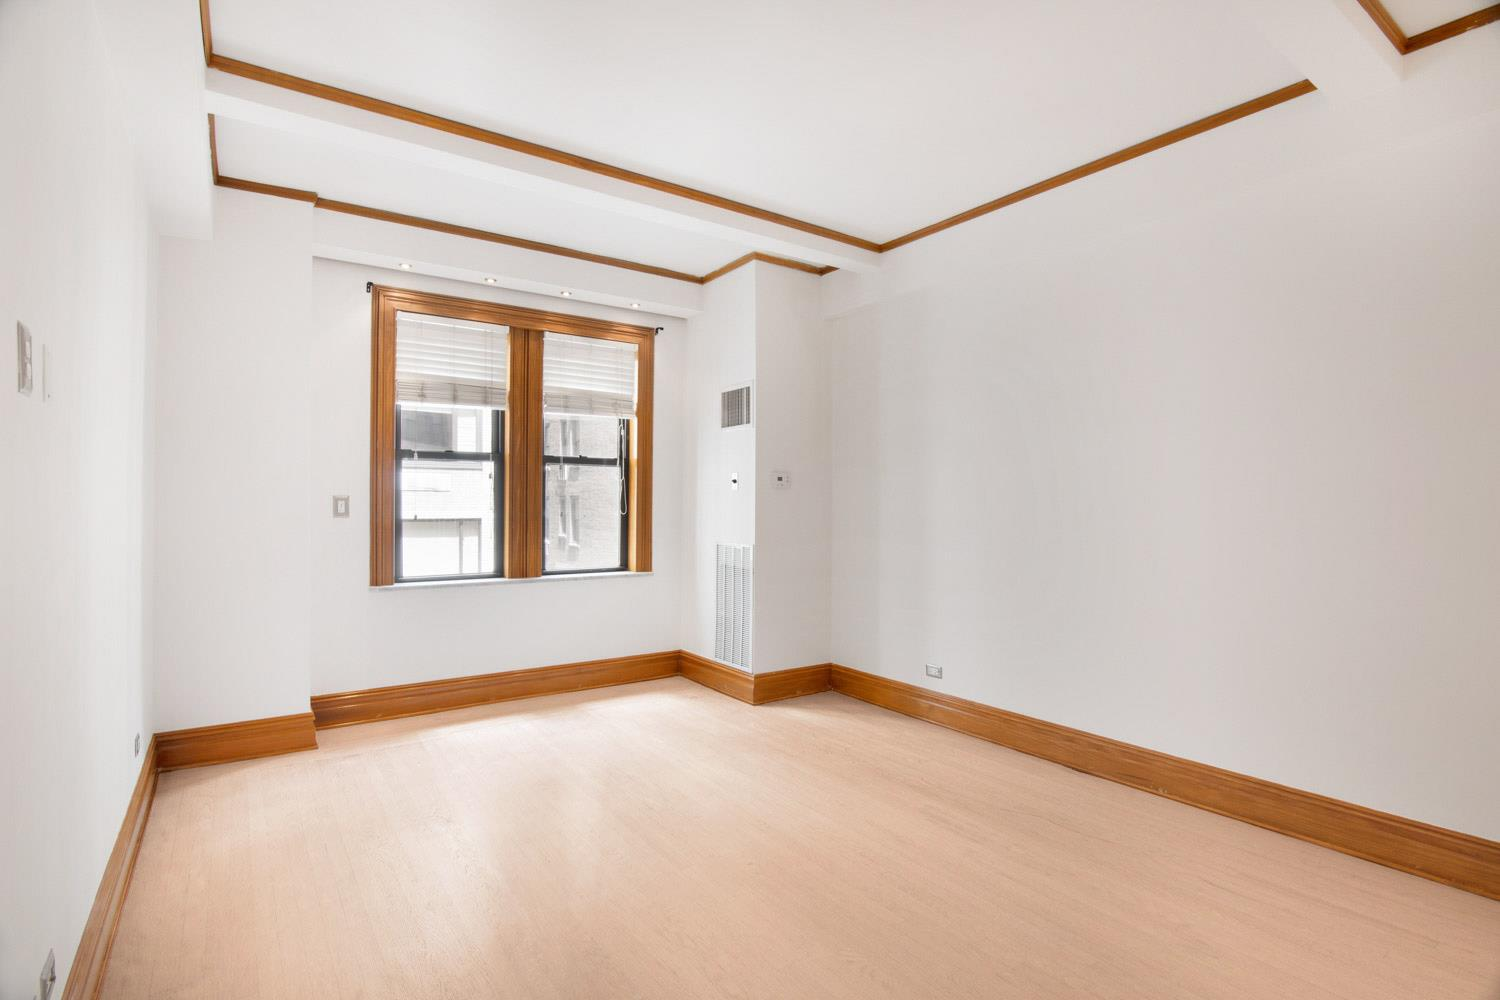 Contemporary 2 BR/2 BA in Midtown West